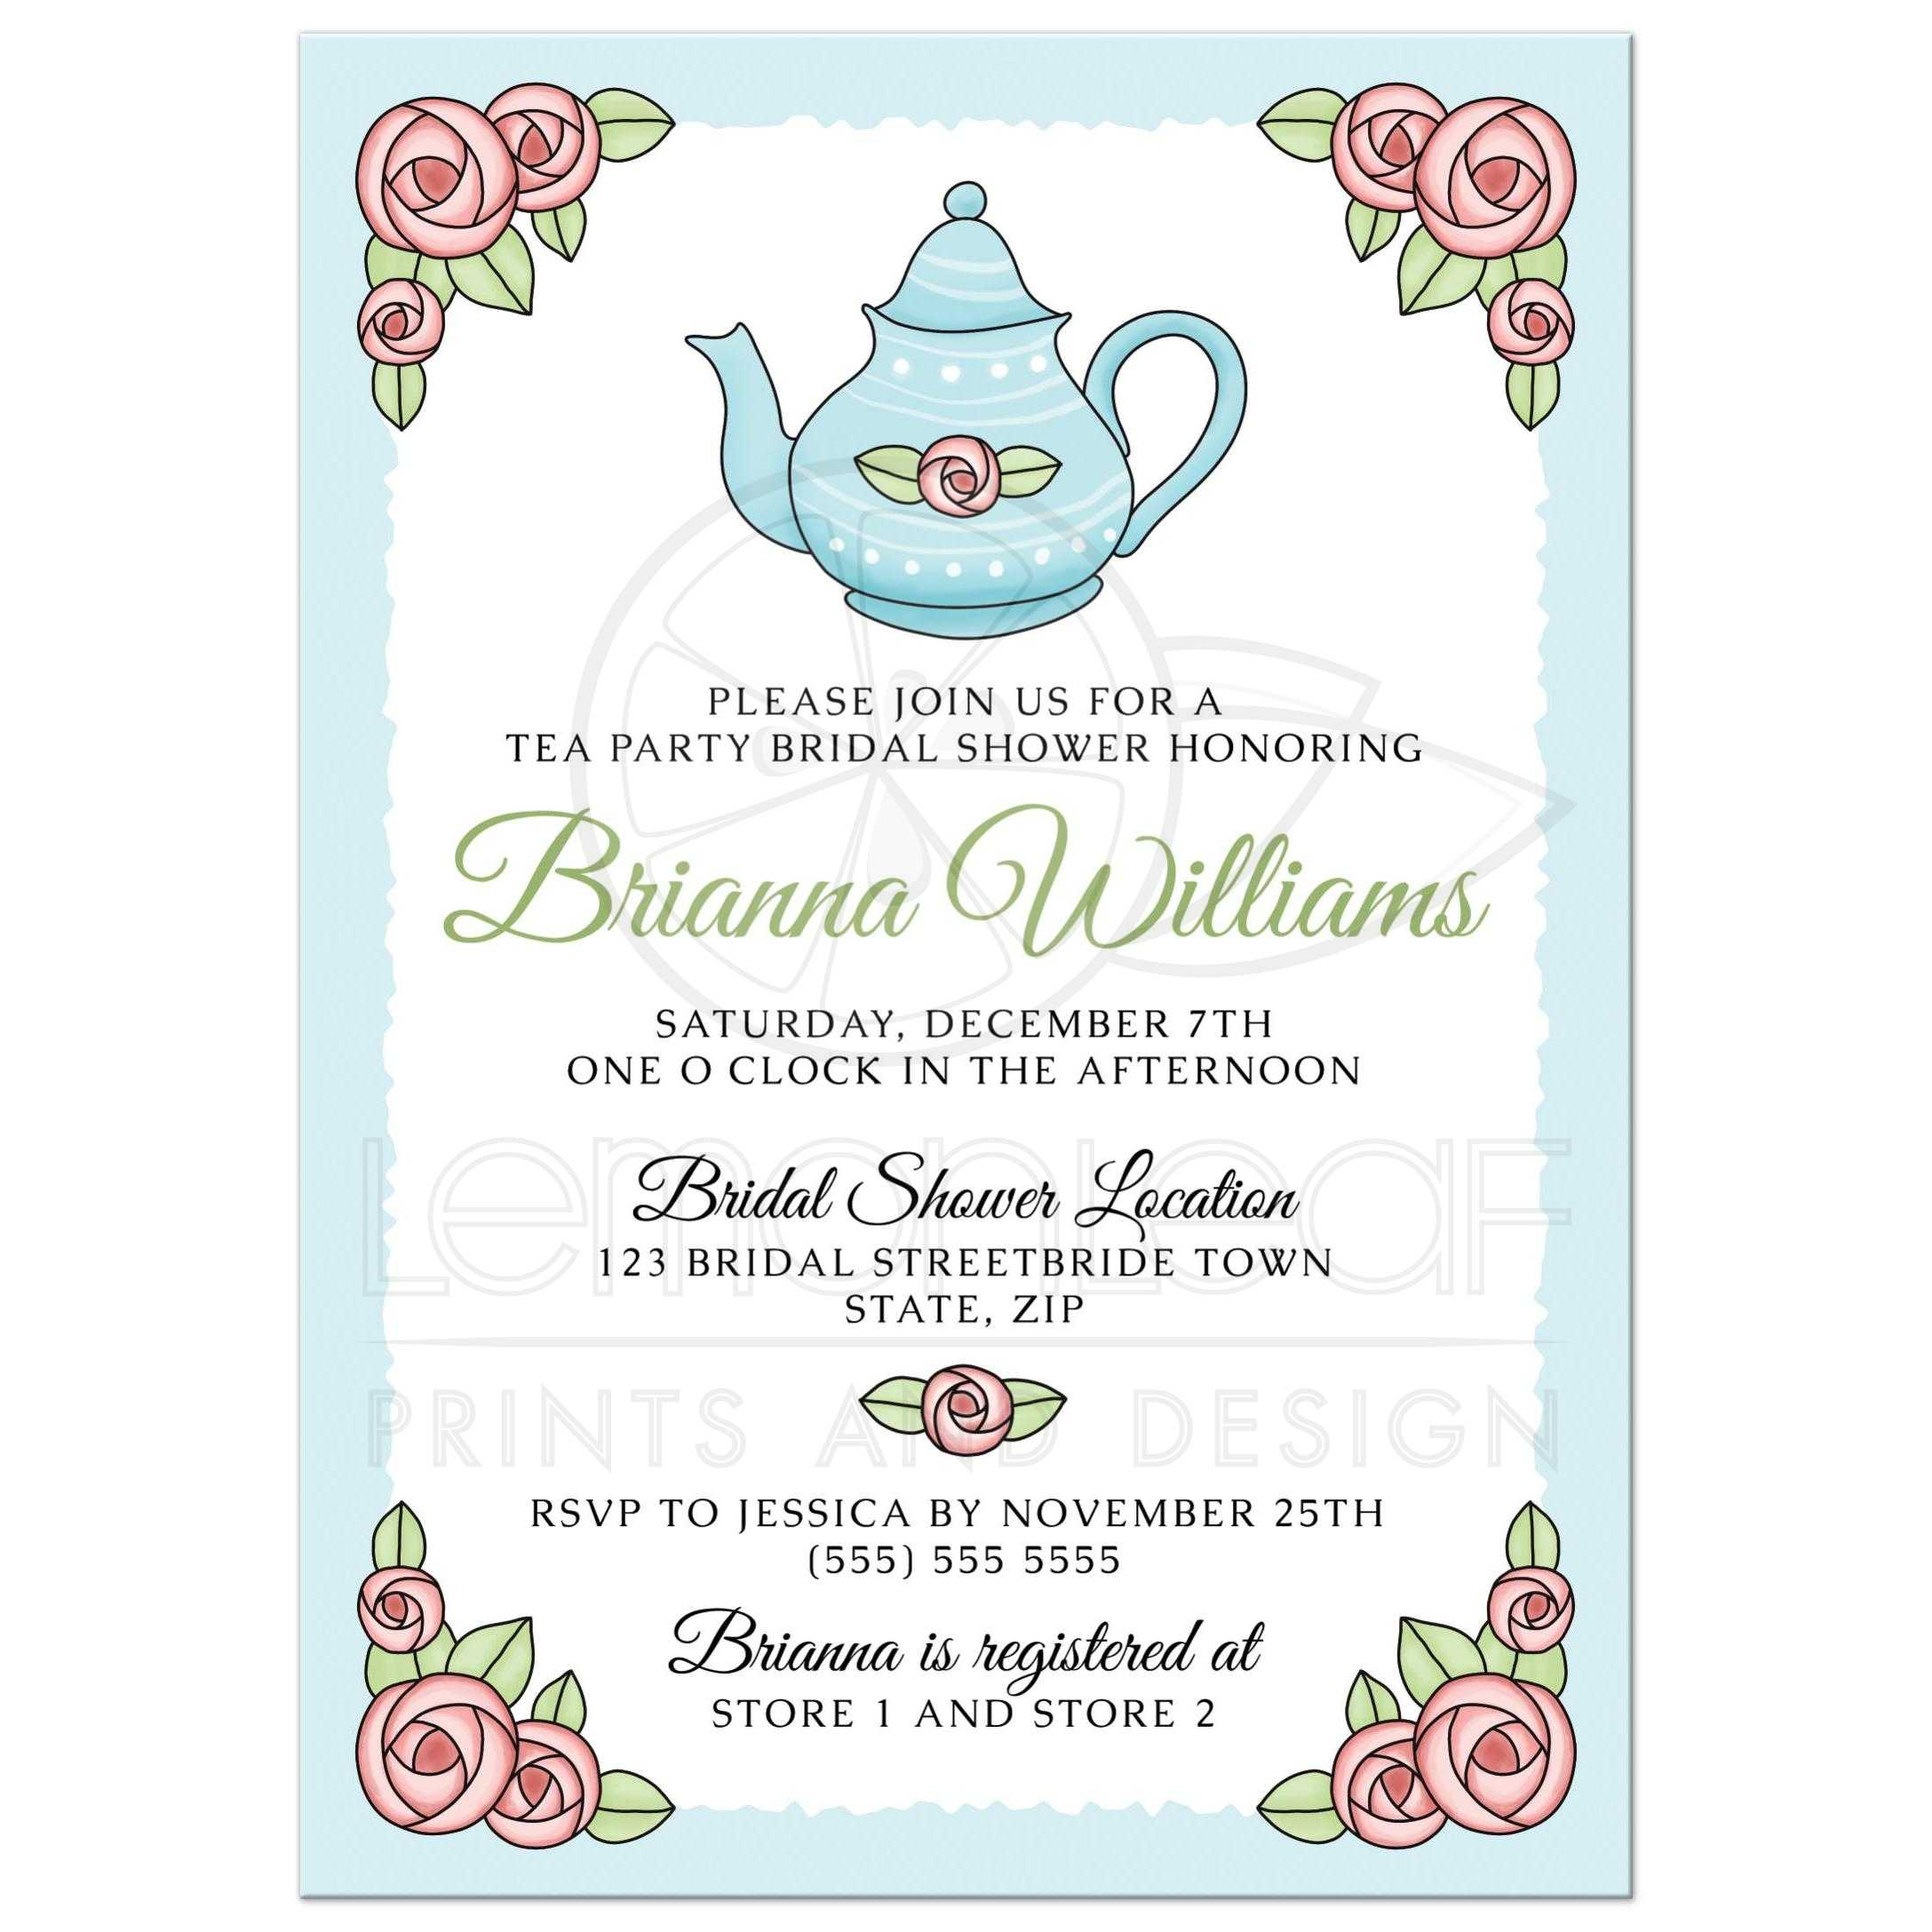 Romantic tea party bridal shower invitations with pink roses and teapot please note that all designs on lemon leaf prints are flat printed designs all embellishments of ribbons bows flowers glitter buckles lace brooches filmwisefo